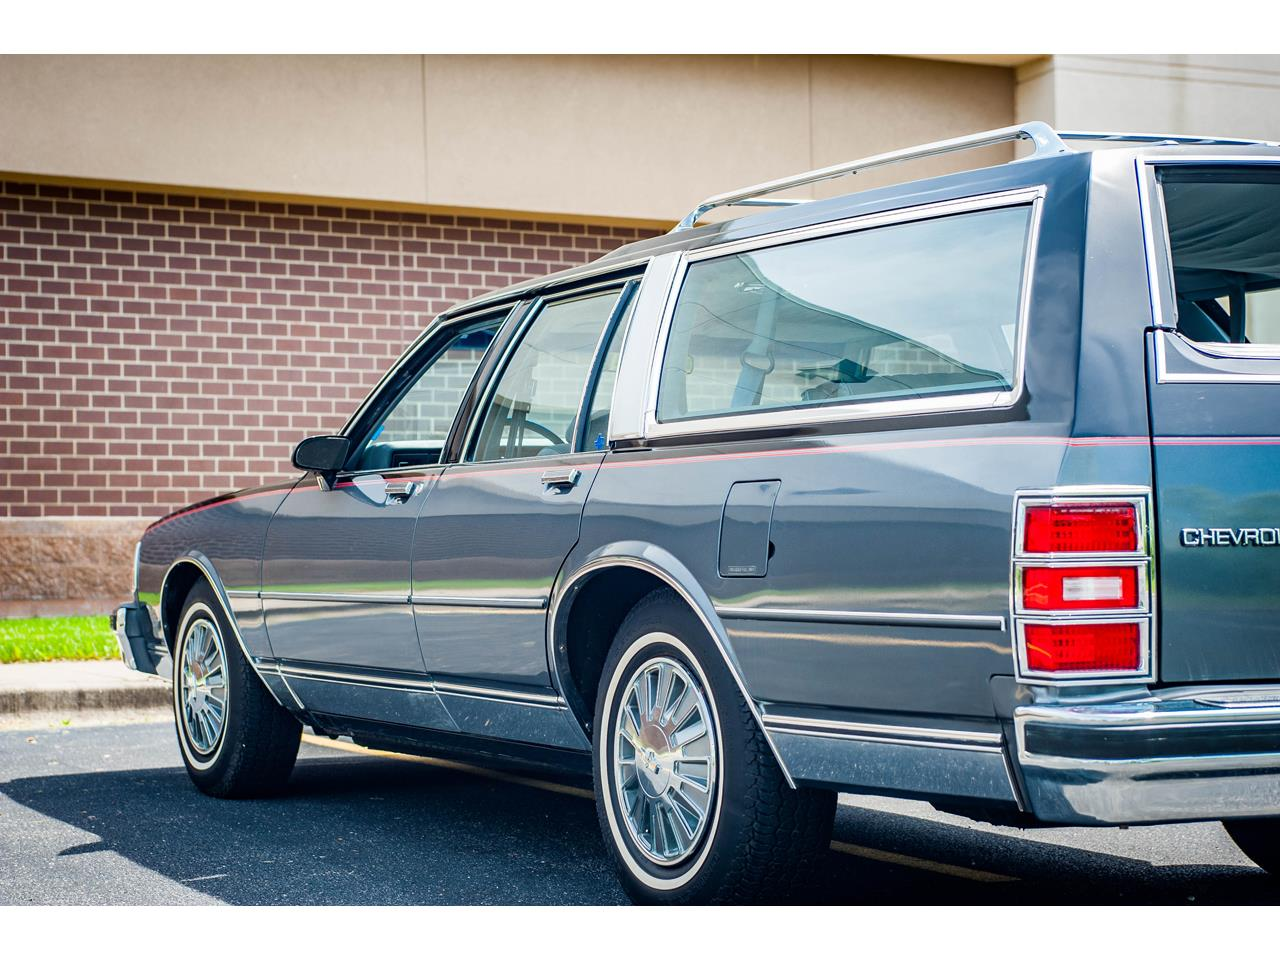 Large Picture of 1989 Chevrolet Caprice located in O'Fallon Illinois Offered by Gateway Classic Cars - St. Louis - QB9K